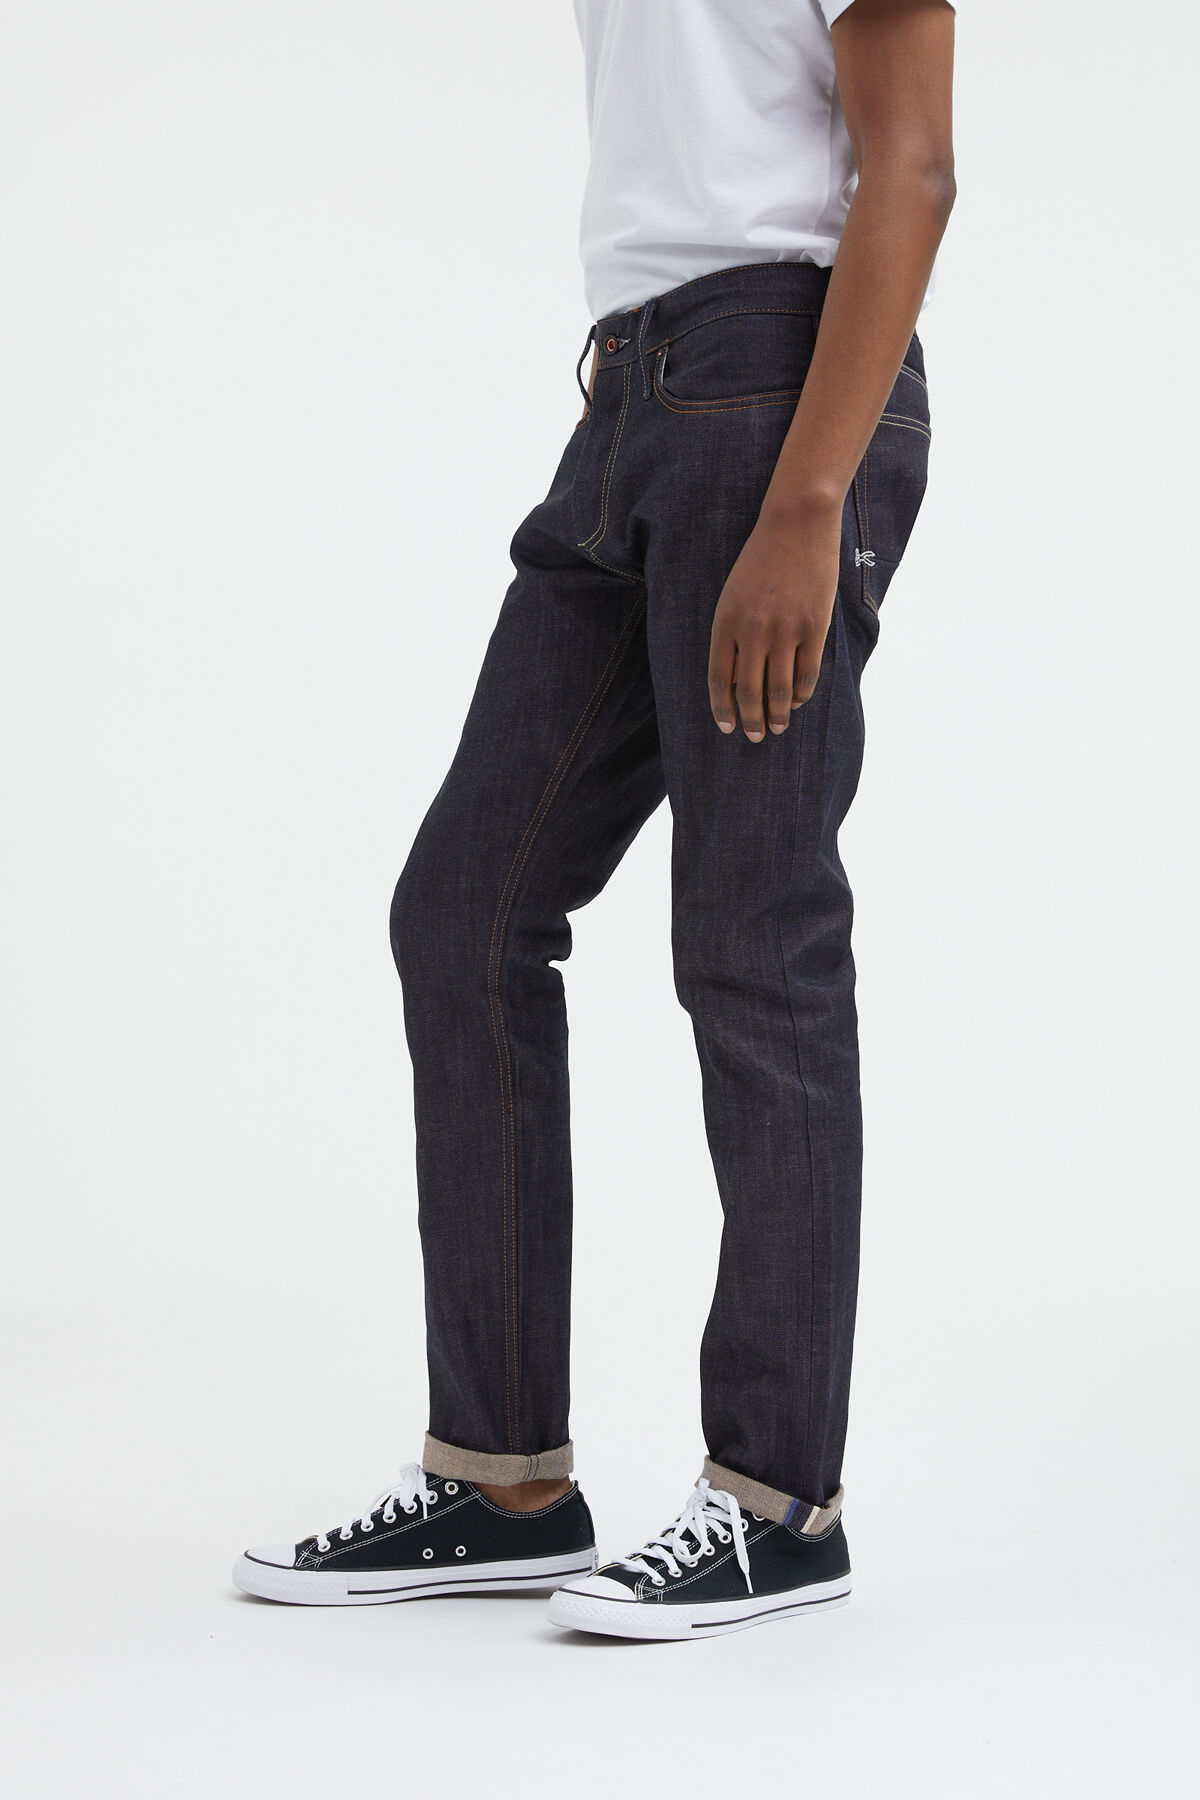 RAZOR Virgin Black Selvedge Denim - Slim Fit